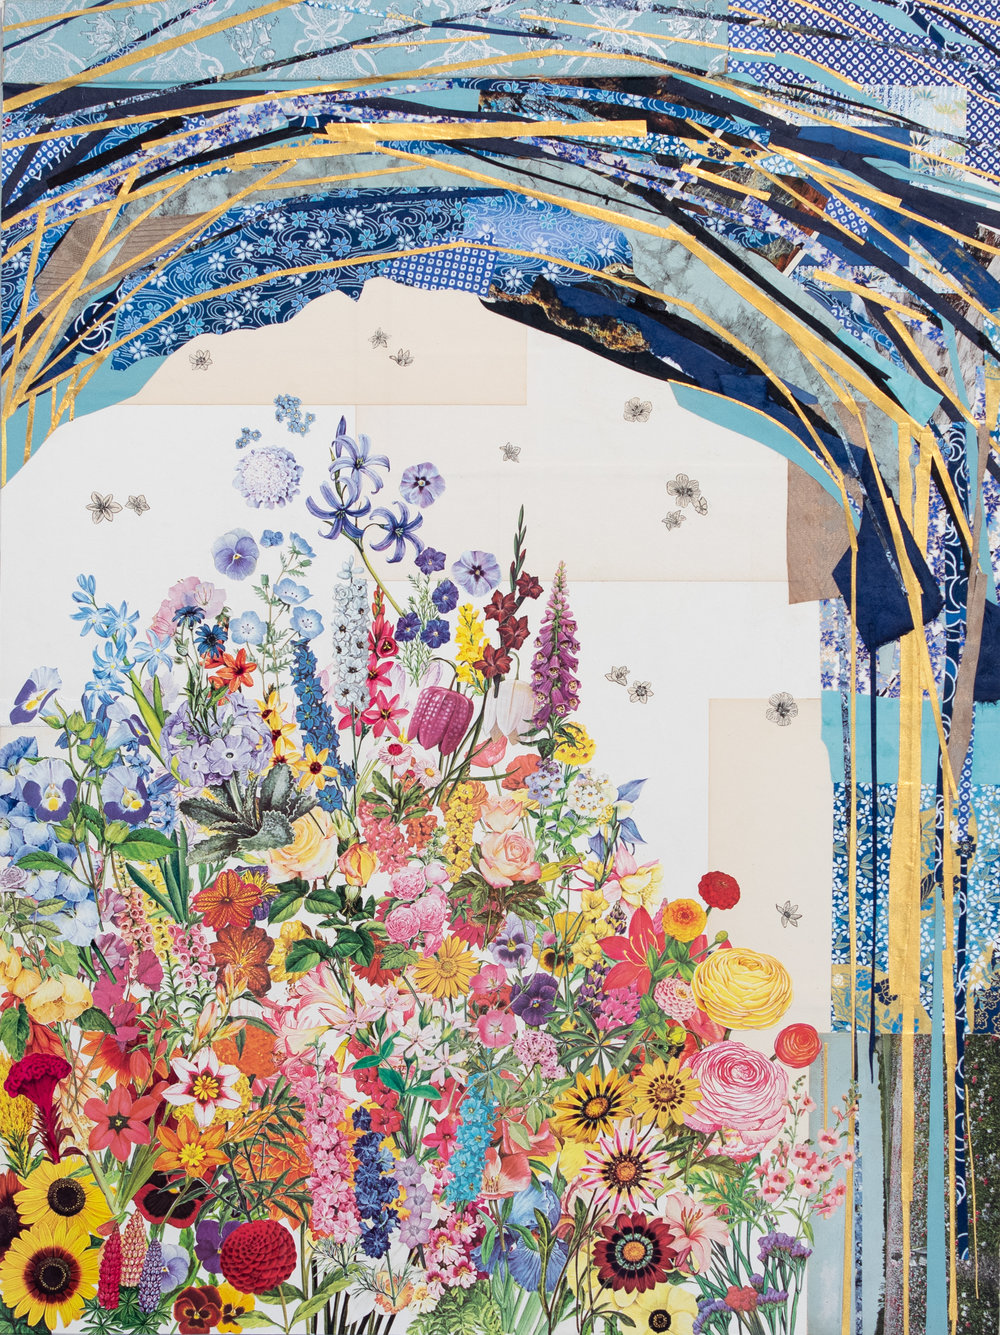 Honeymoon Garden   Collage on masonite panel, 24x20 in.  Private collection - CA